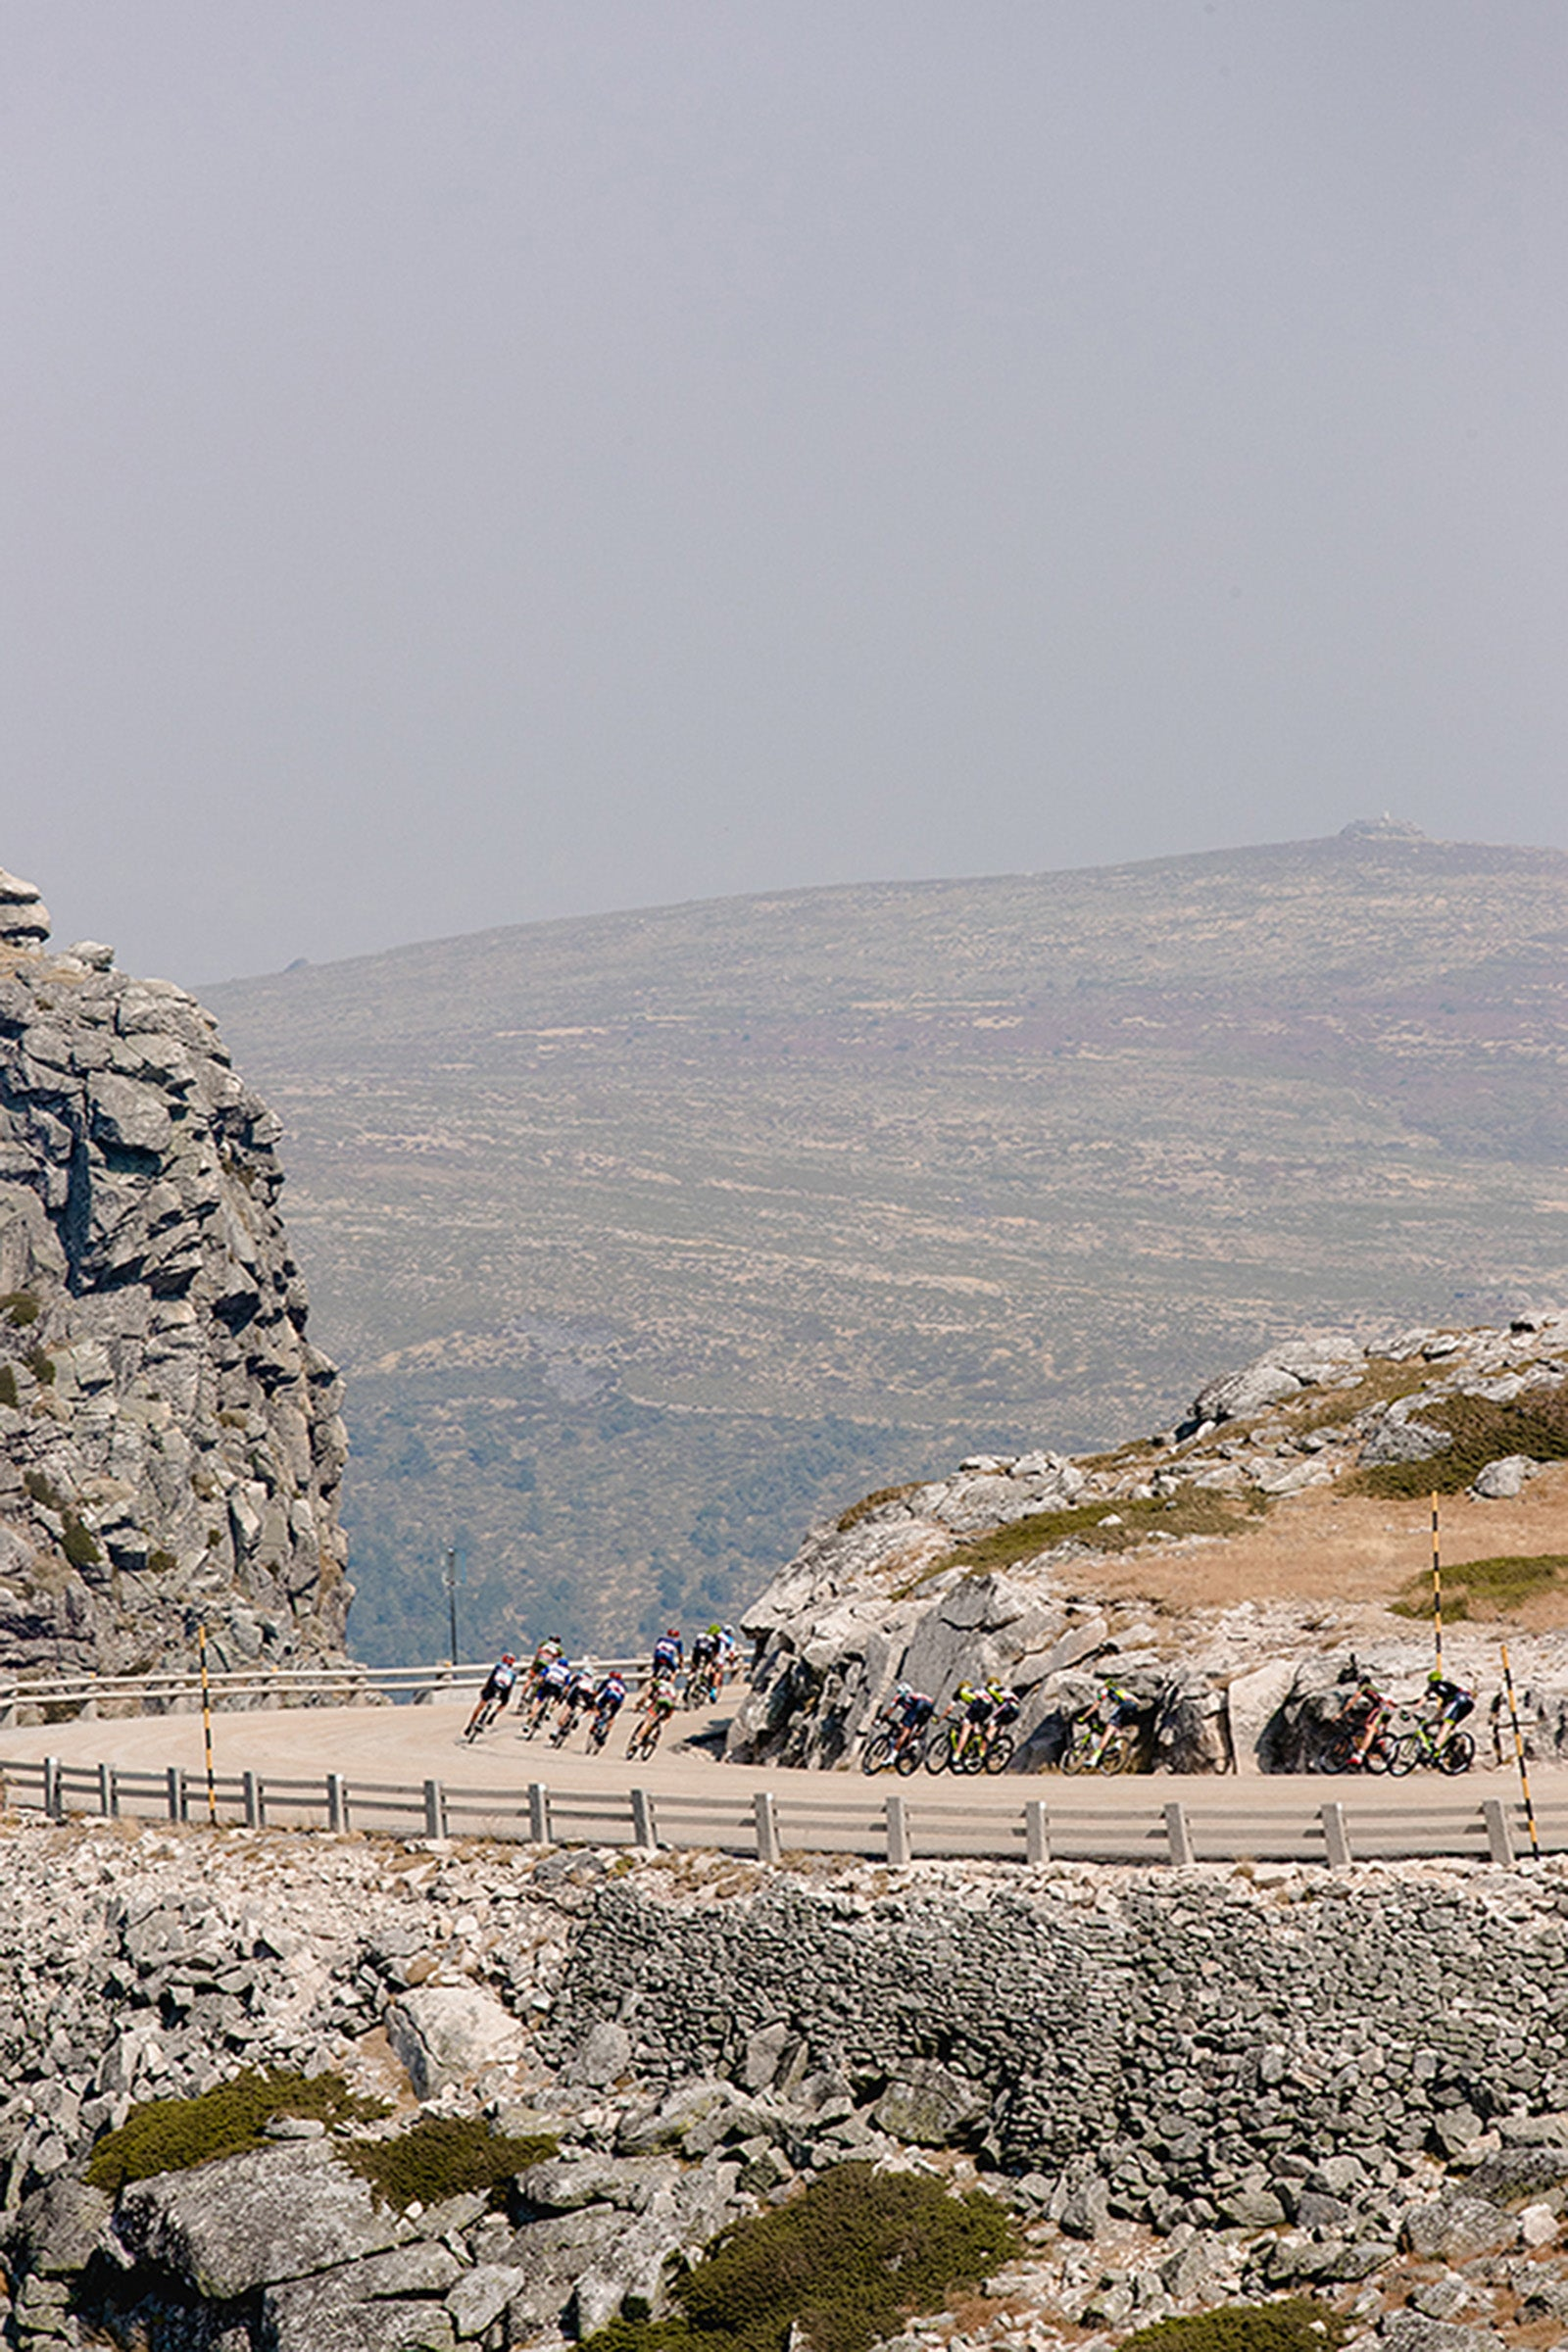 The peloton descends during the Tour of Portugal